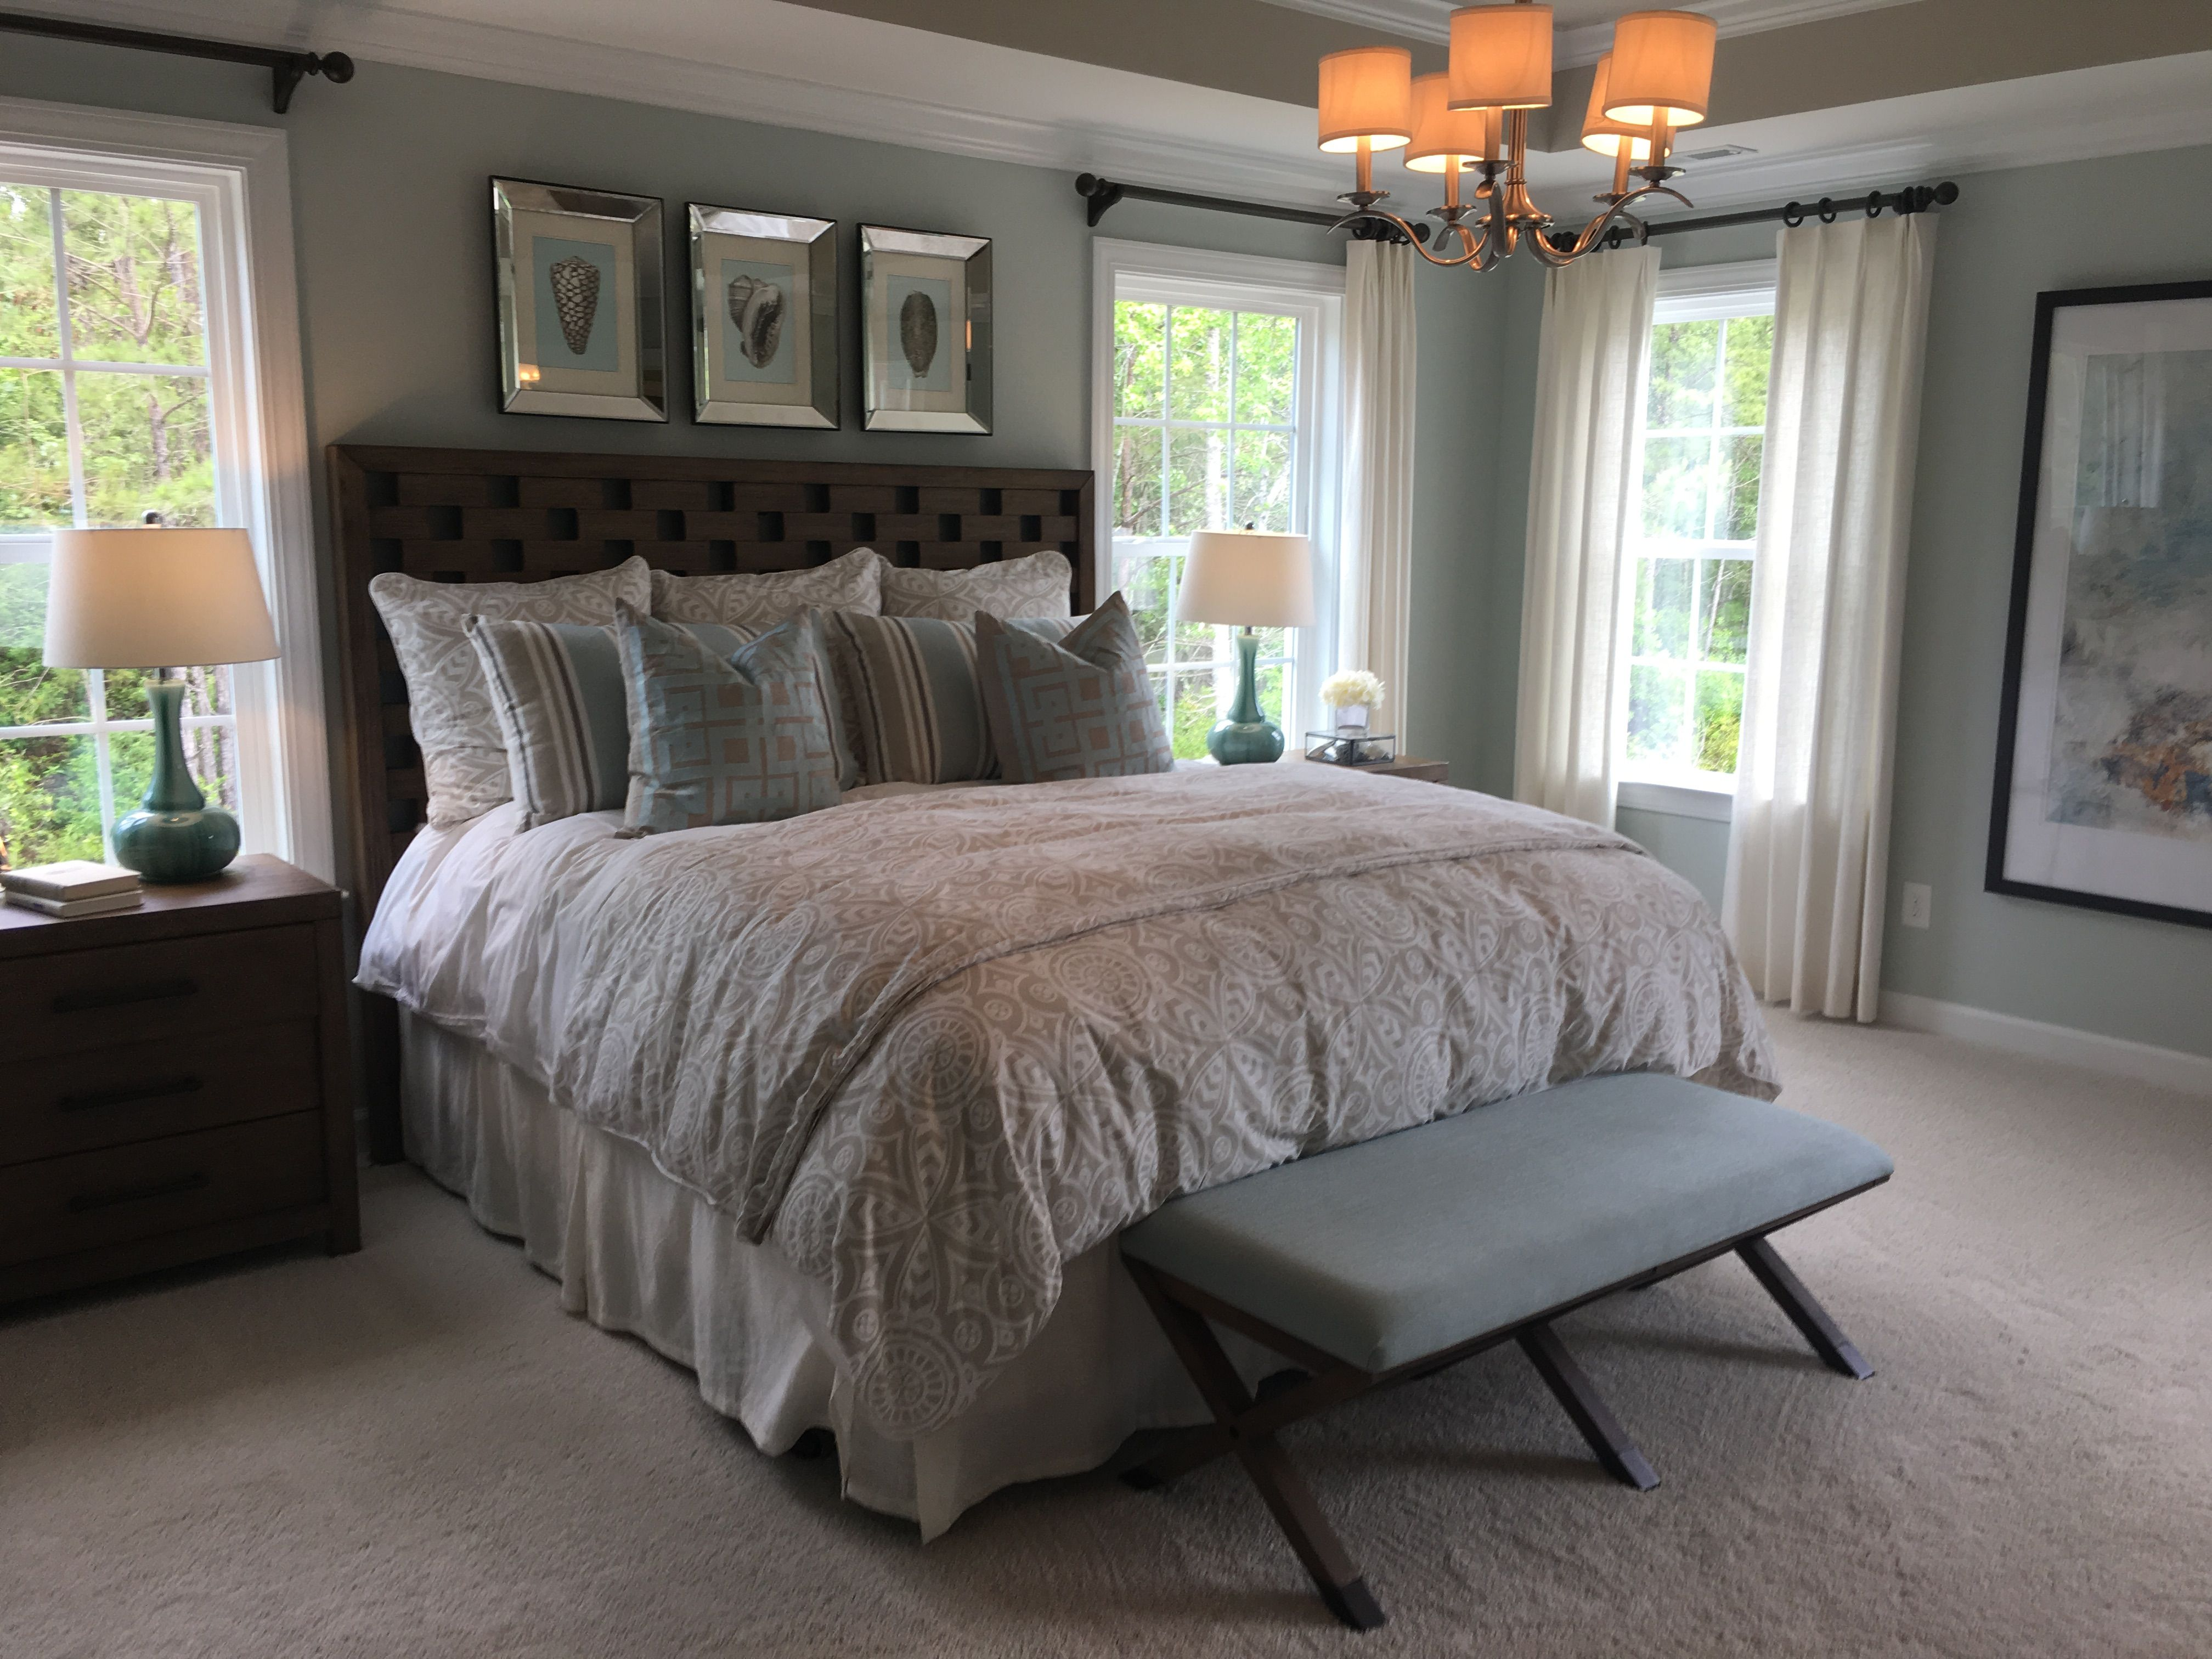 Bedroom Staging pinsarah milin on staging a home   pinterest   stage